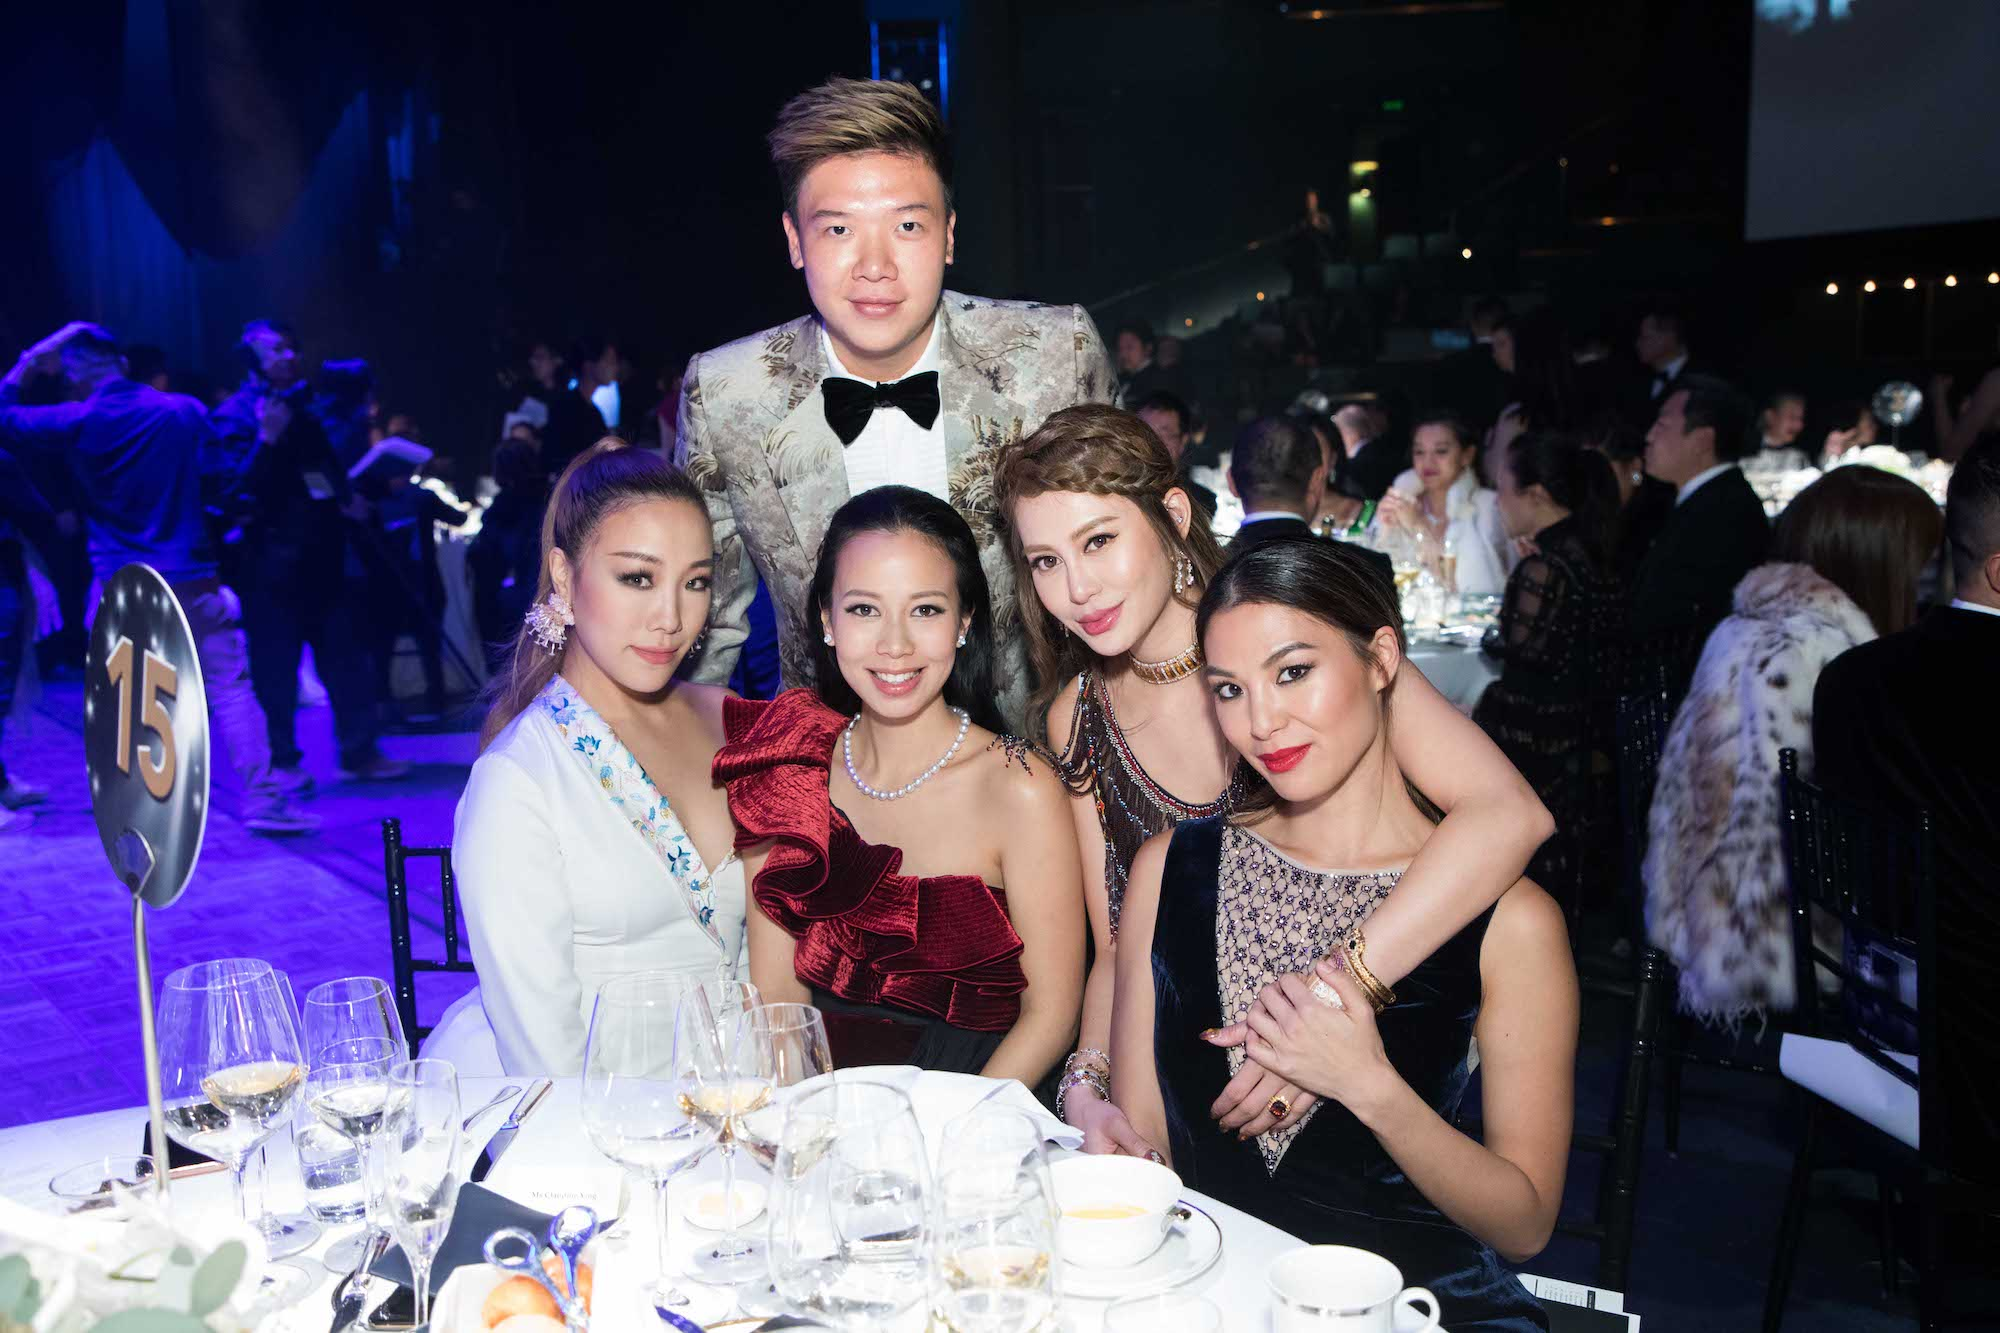 Standing: Elson Luk Seated: Feiping Chang, Claudine Ying, Eleanor Lam, Alison Chan-El Azar